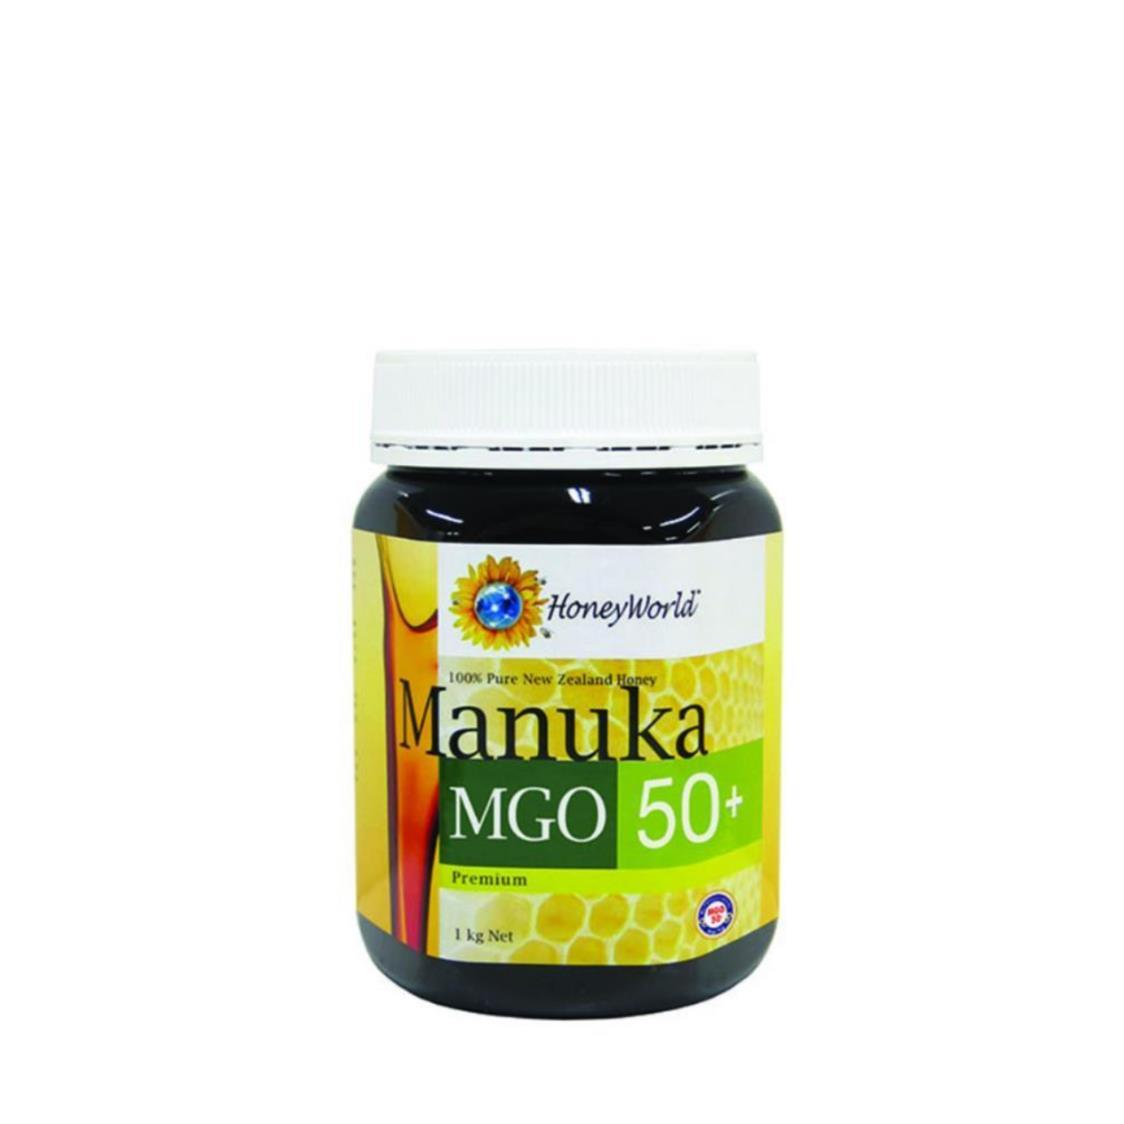 HONEYWORLD Manuka MGO 50 1KG